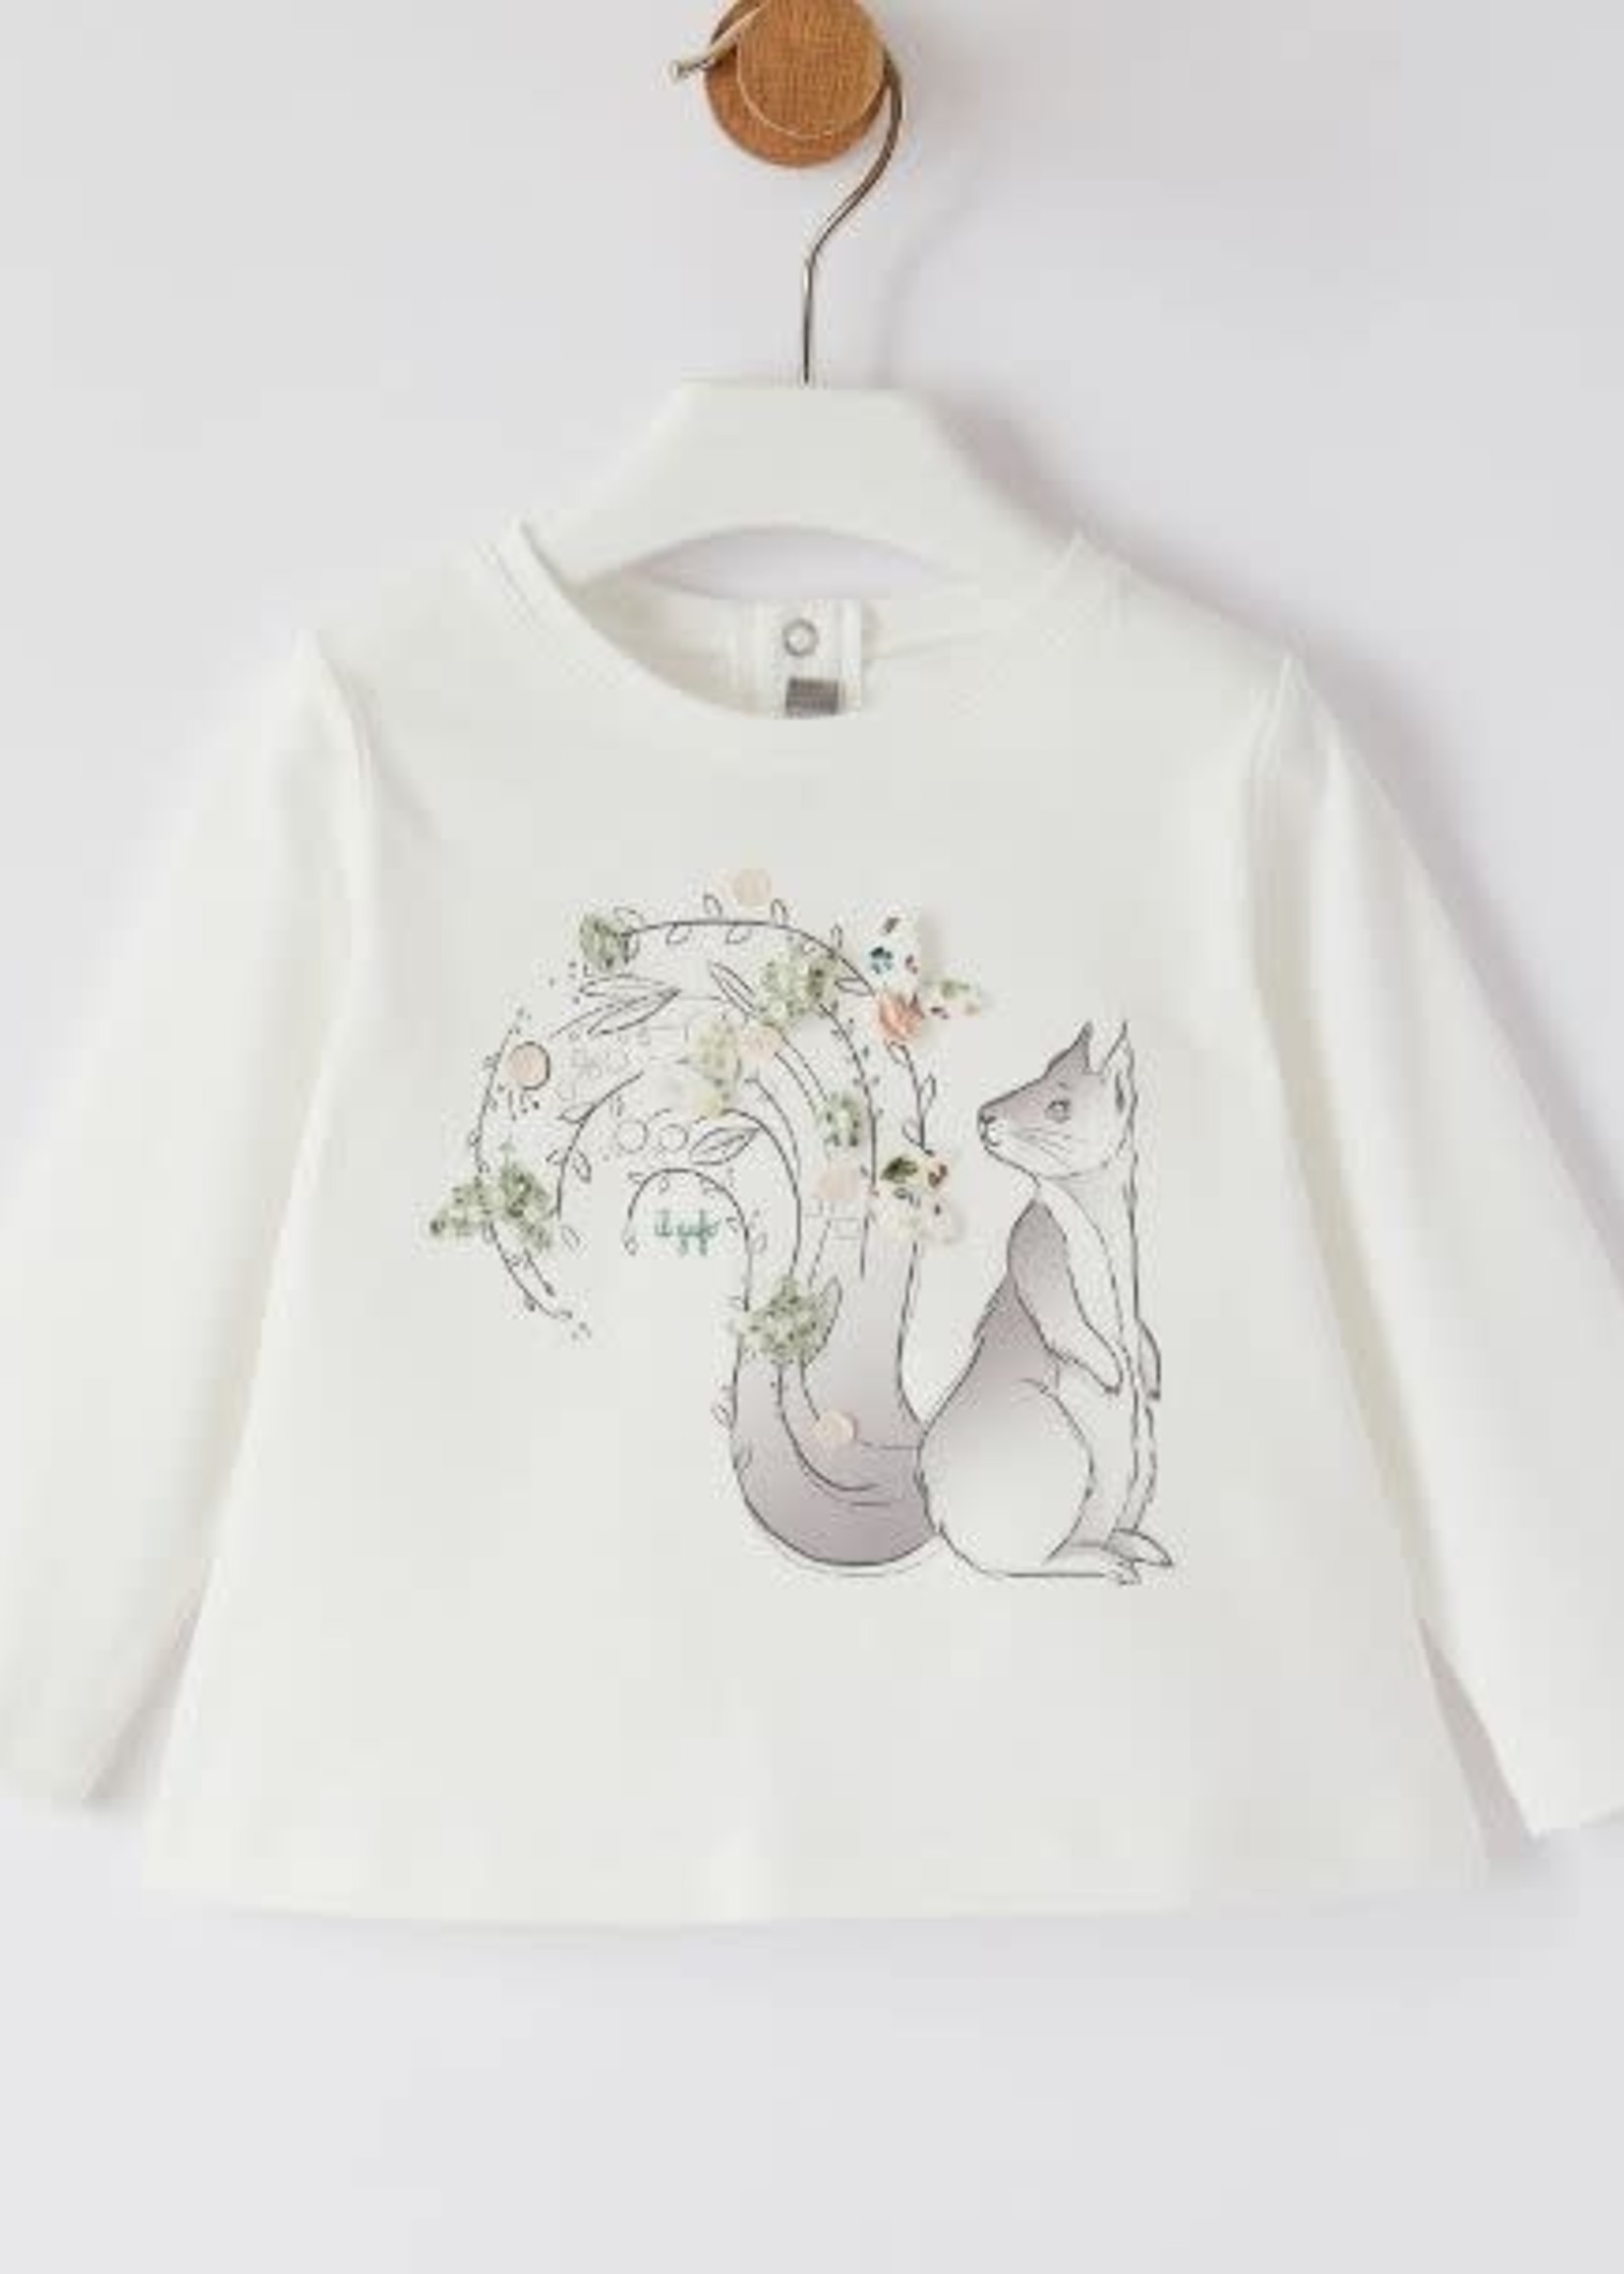 Il Gufo Il Gufo-AW21 GIRLS LS T-SHIRT W/SQUIRREL GRAPHIC AND DETAILING   A21 TA256